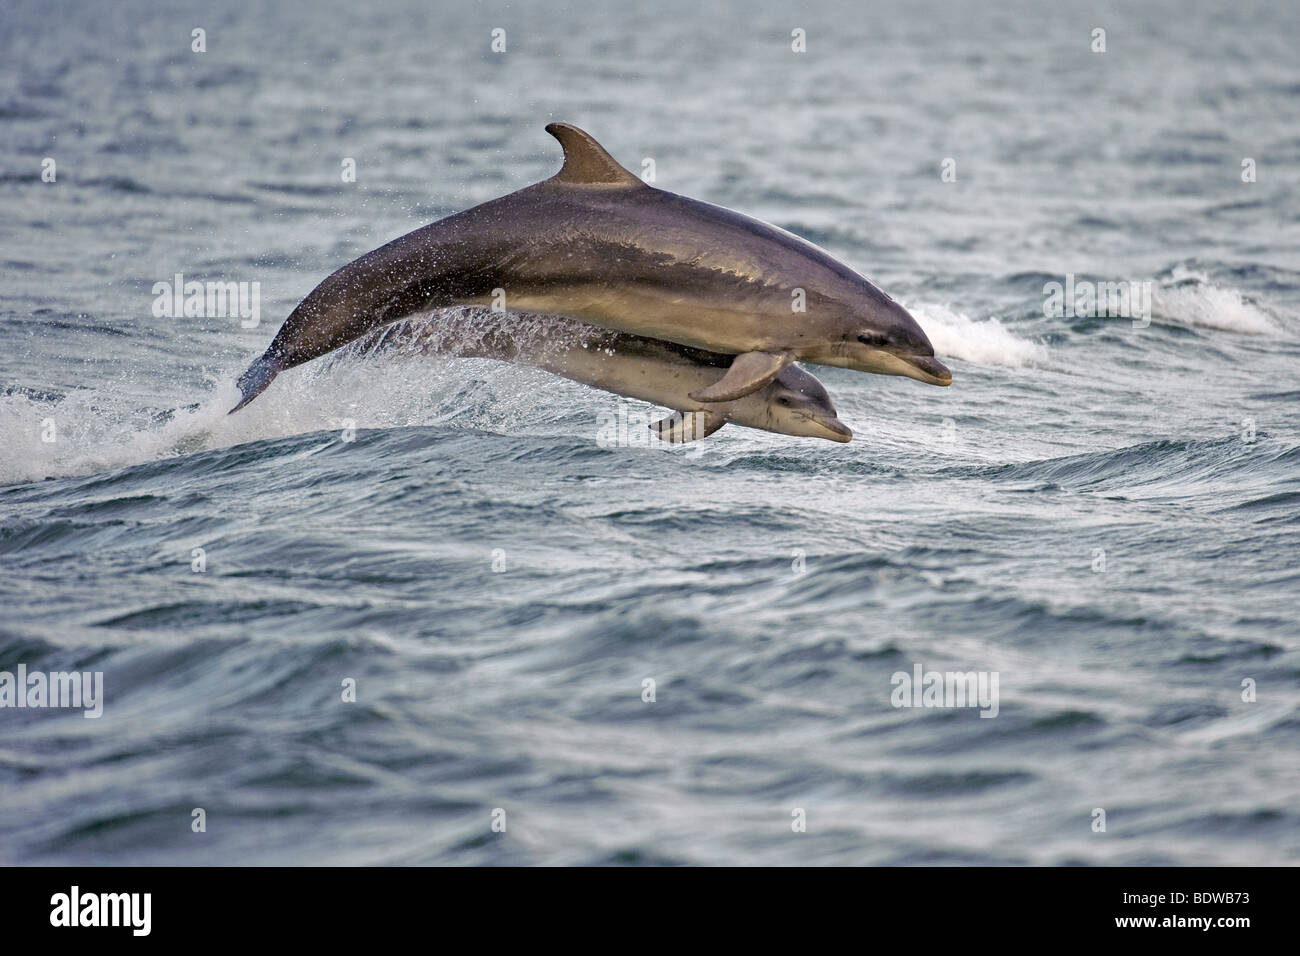 Bottlenose dolphin Tursiops truncatus mother and calf breaching. Moray Firth, Scotland. - Stock Image